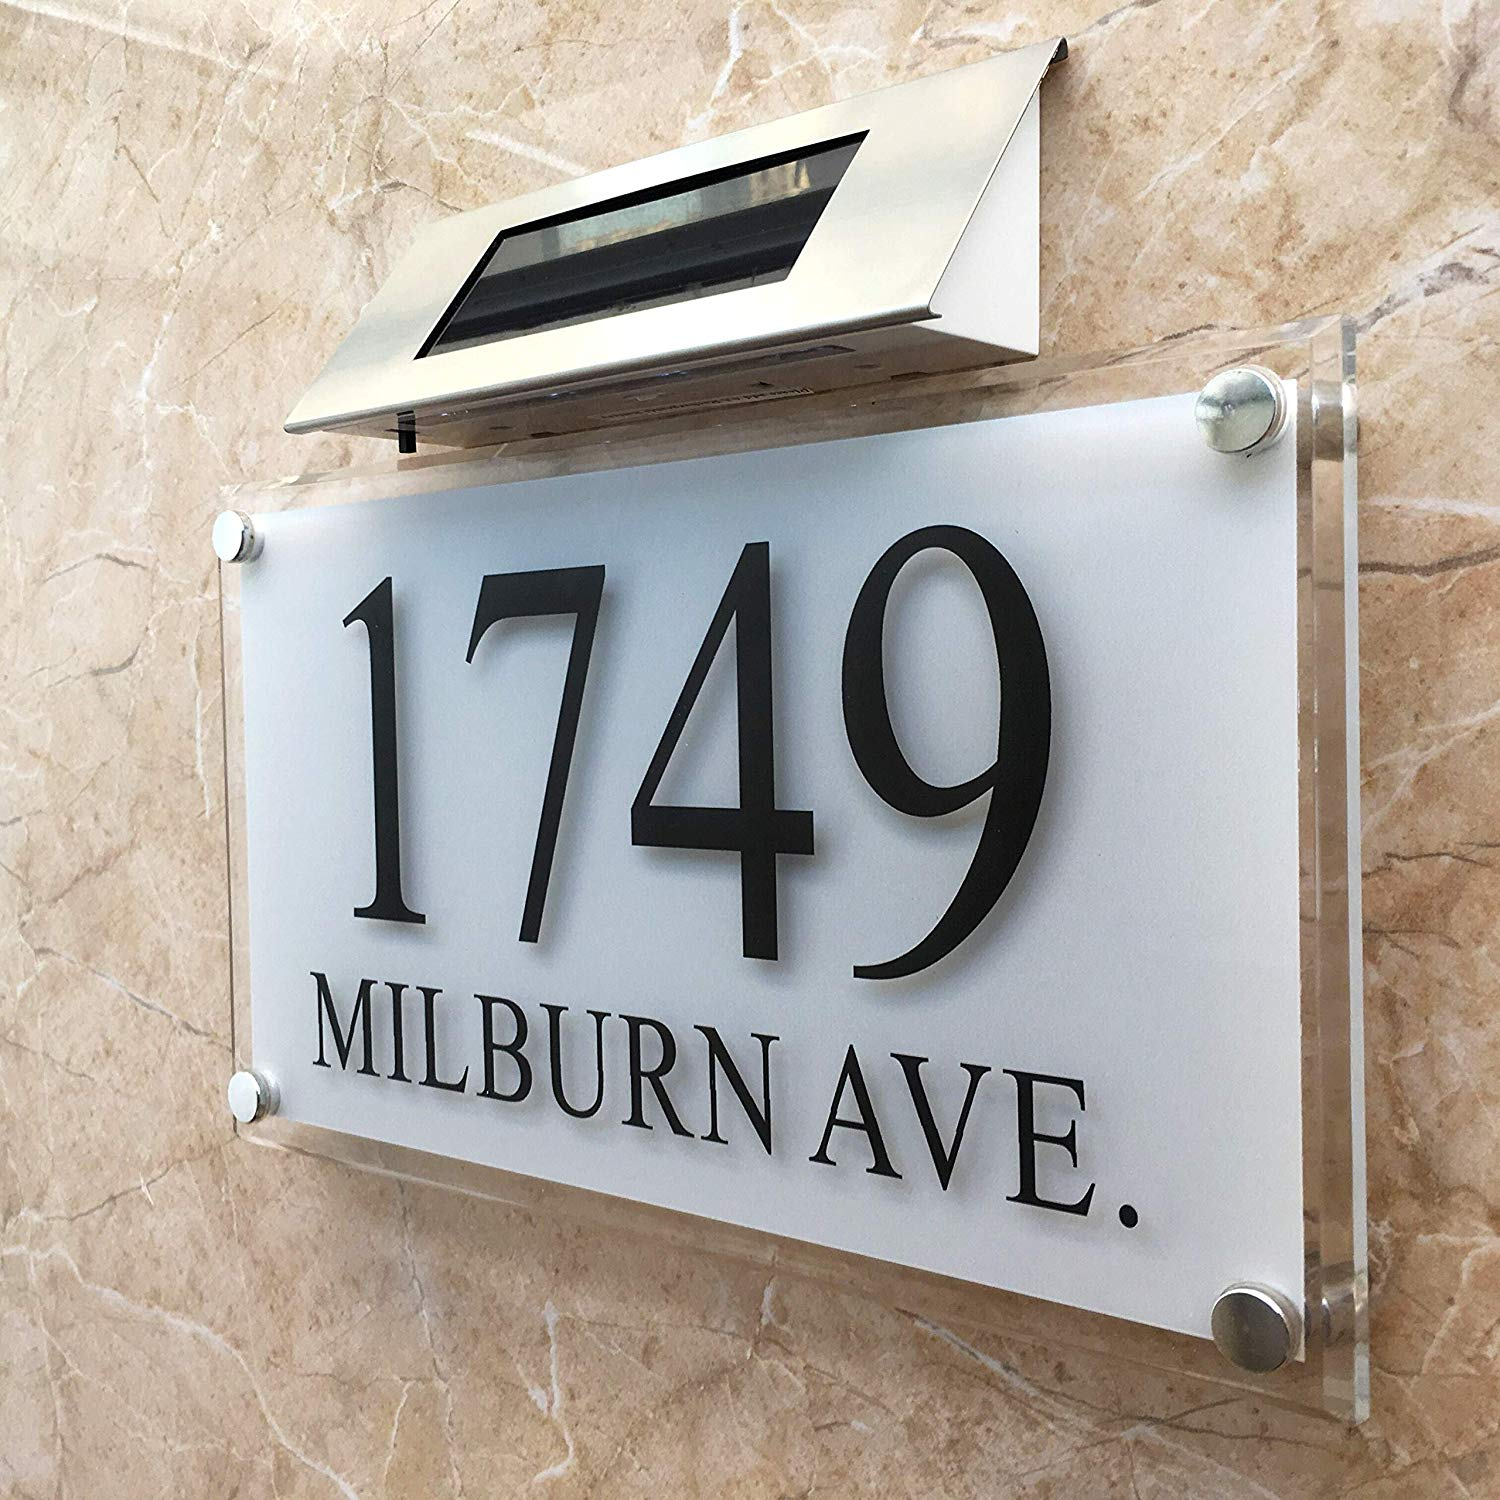 Personalised Large Solar Light Crystal Effect House Signs Plaques Door Numbers 1 9999 Street Name Plate Led Number House Solar Door Plates Aliexpress